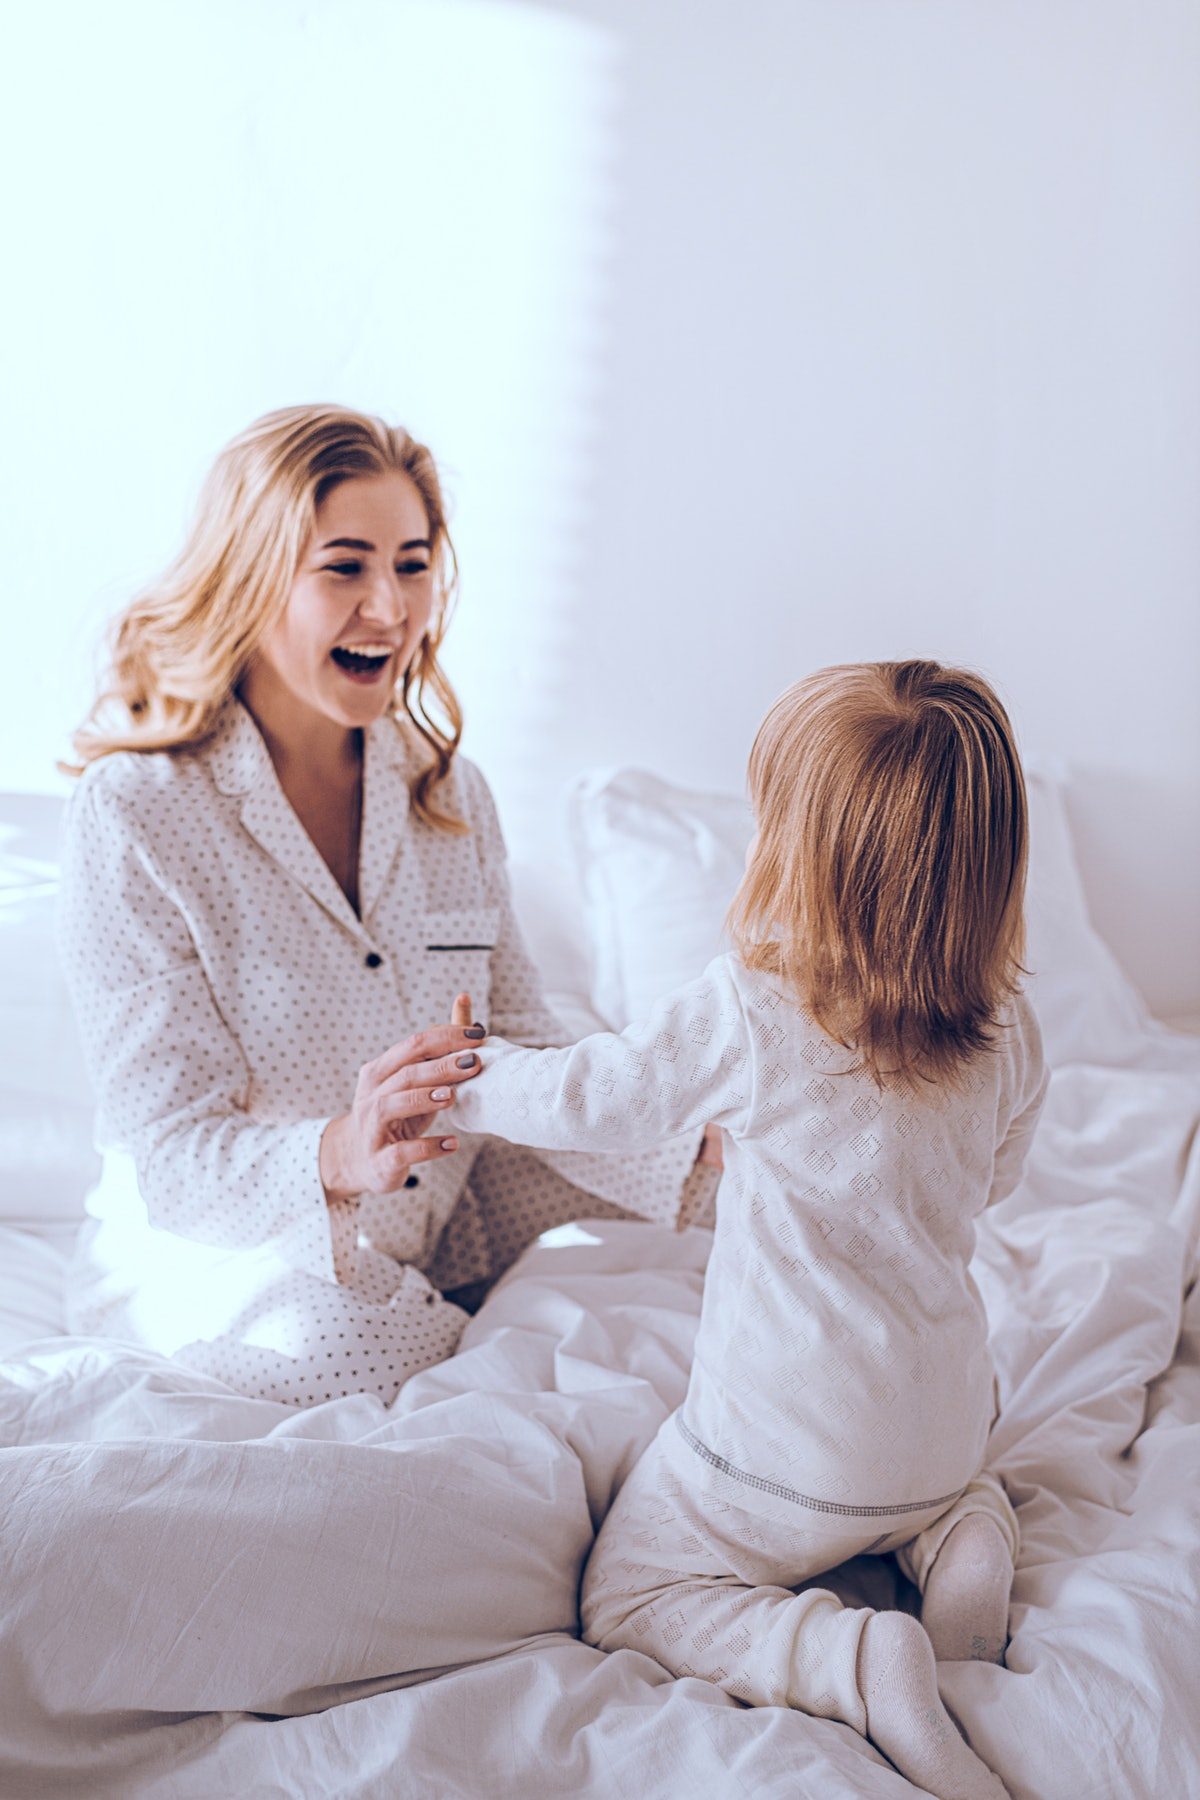 A jewelry designer spend the a.m. with her children before starting work.